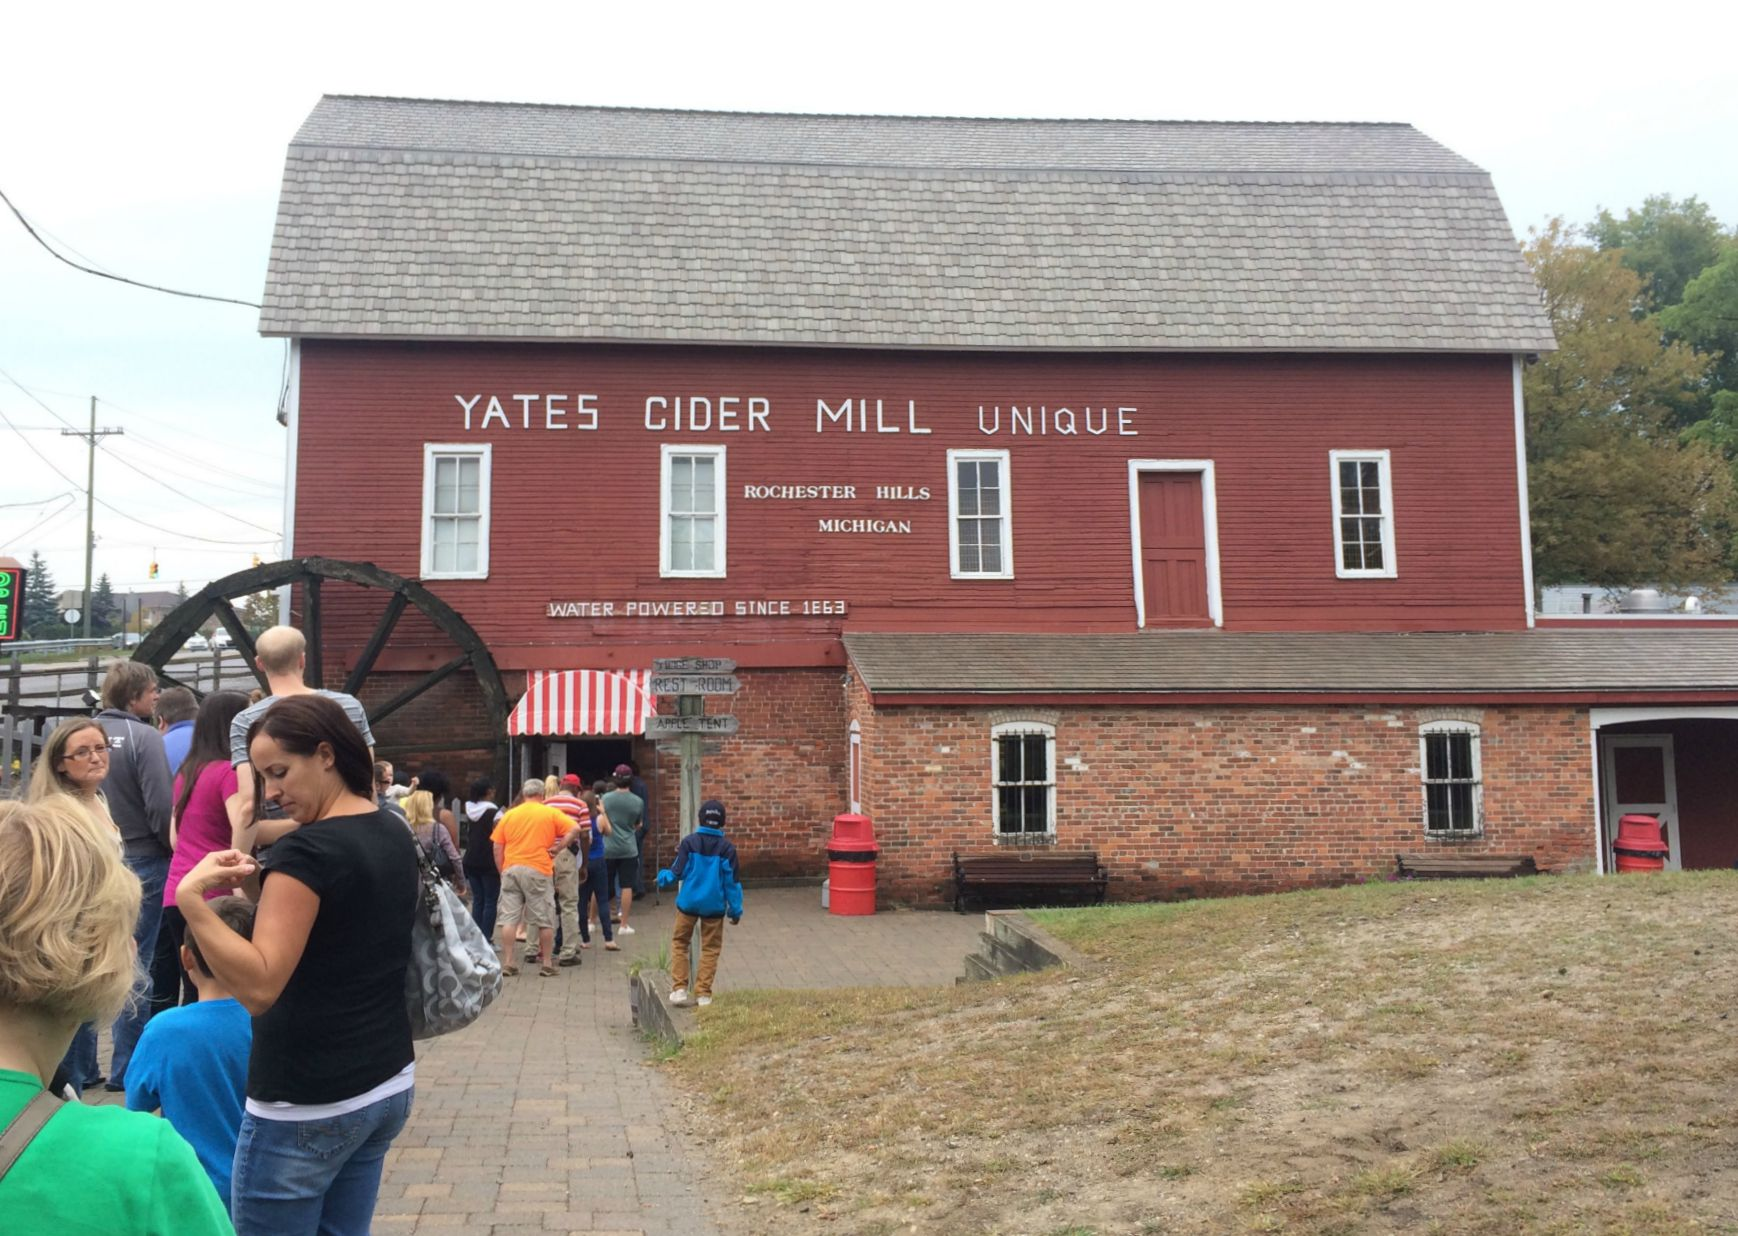 Yates cider mill is open